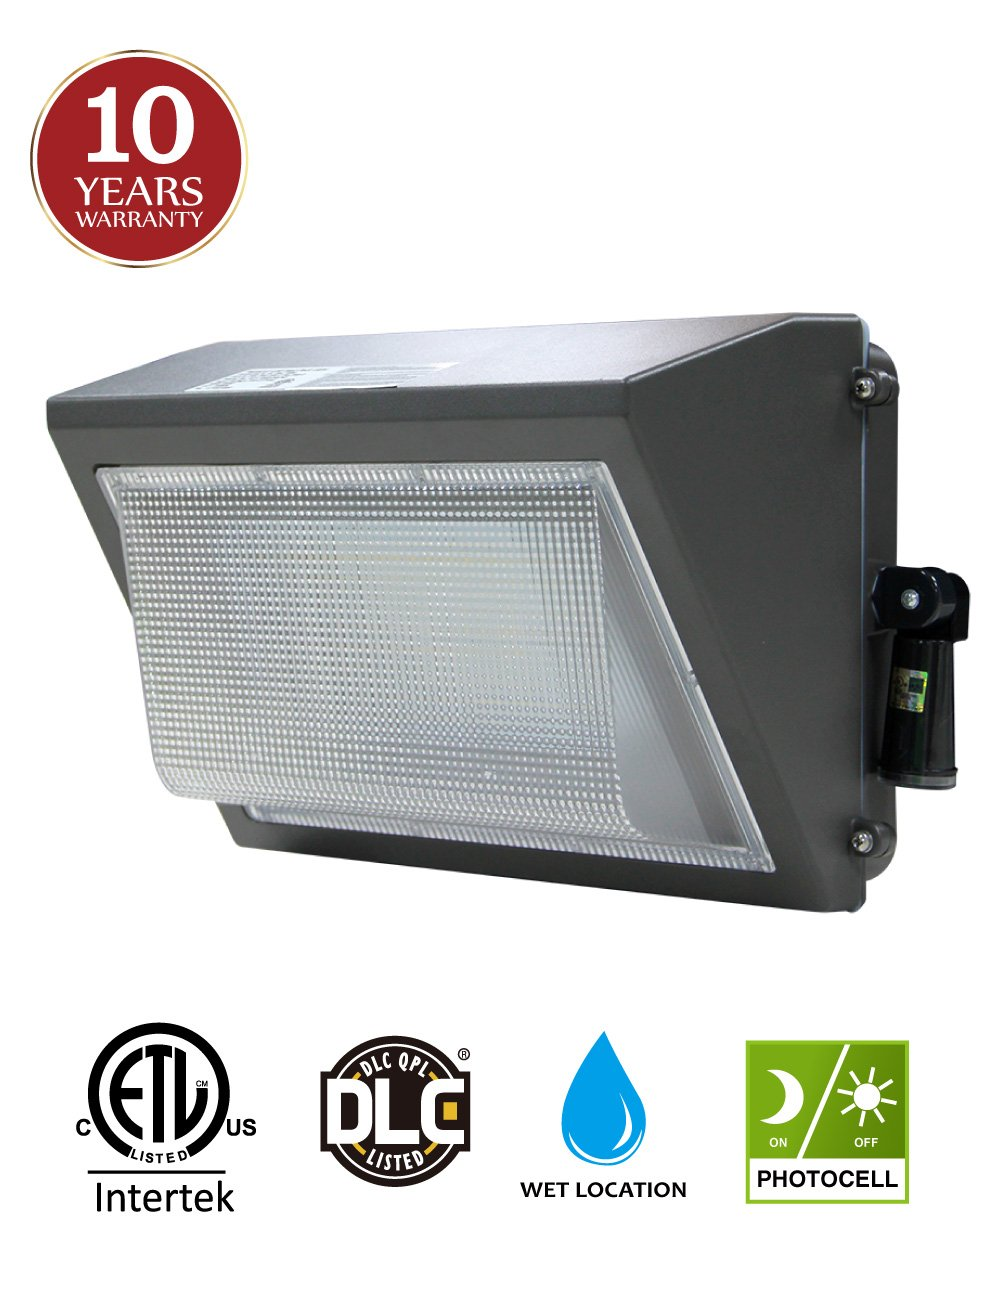 100W LED Wall Pack with Adjustable Dusk-to-dawn Photocell, 300-400W HPS/MH Replacement, IP65 Rated Waterproof Outdoor Commercial Lighting Fixture, 5000K 12500lm 10-year Warranty by Kadision by kadision